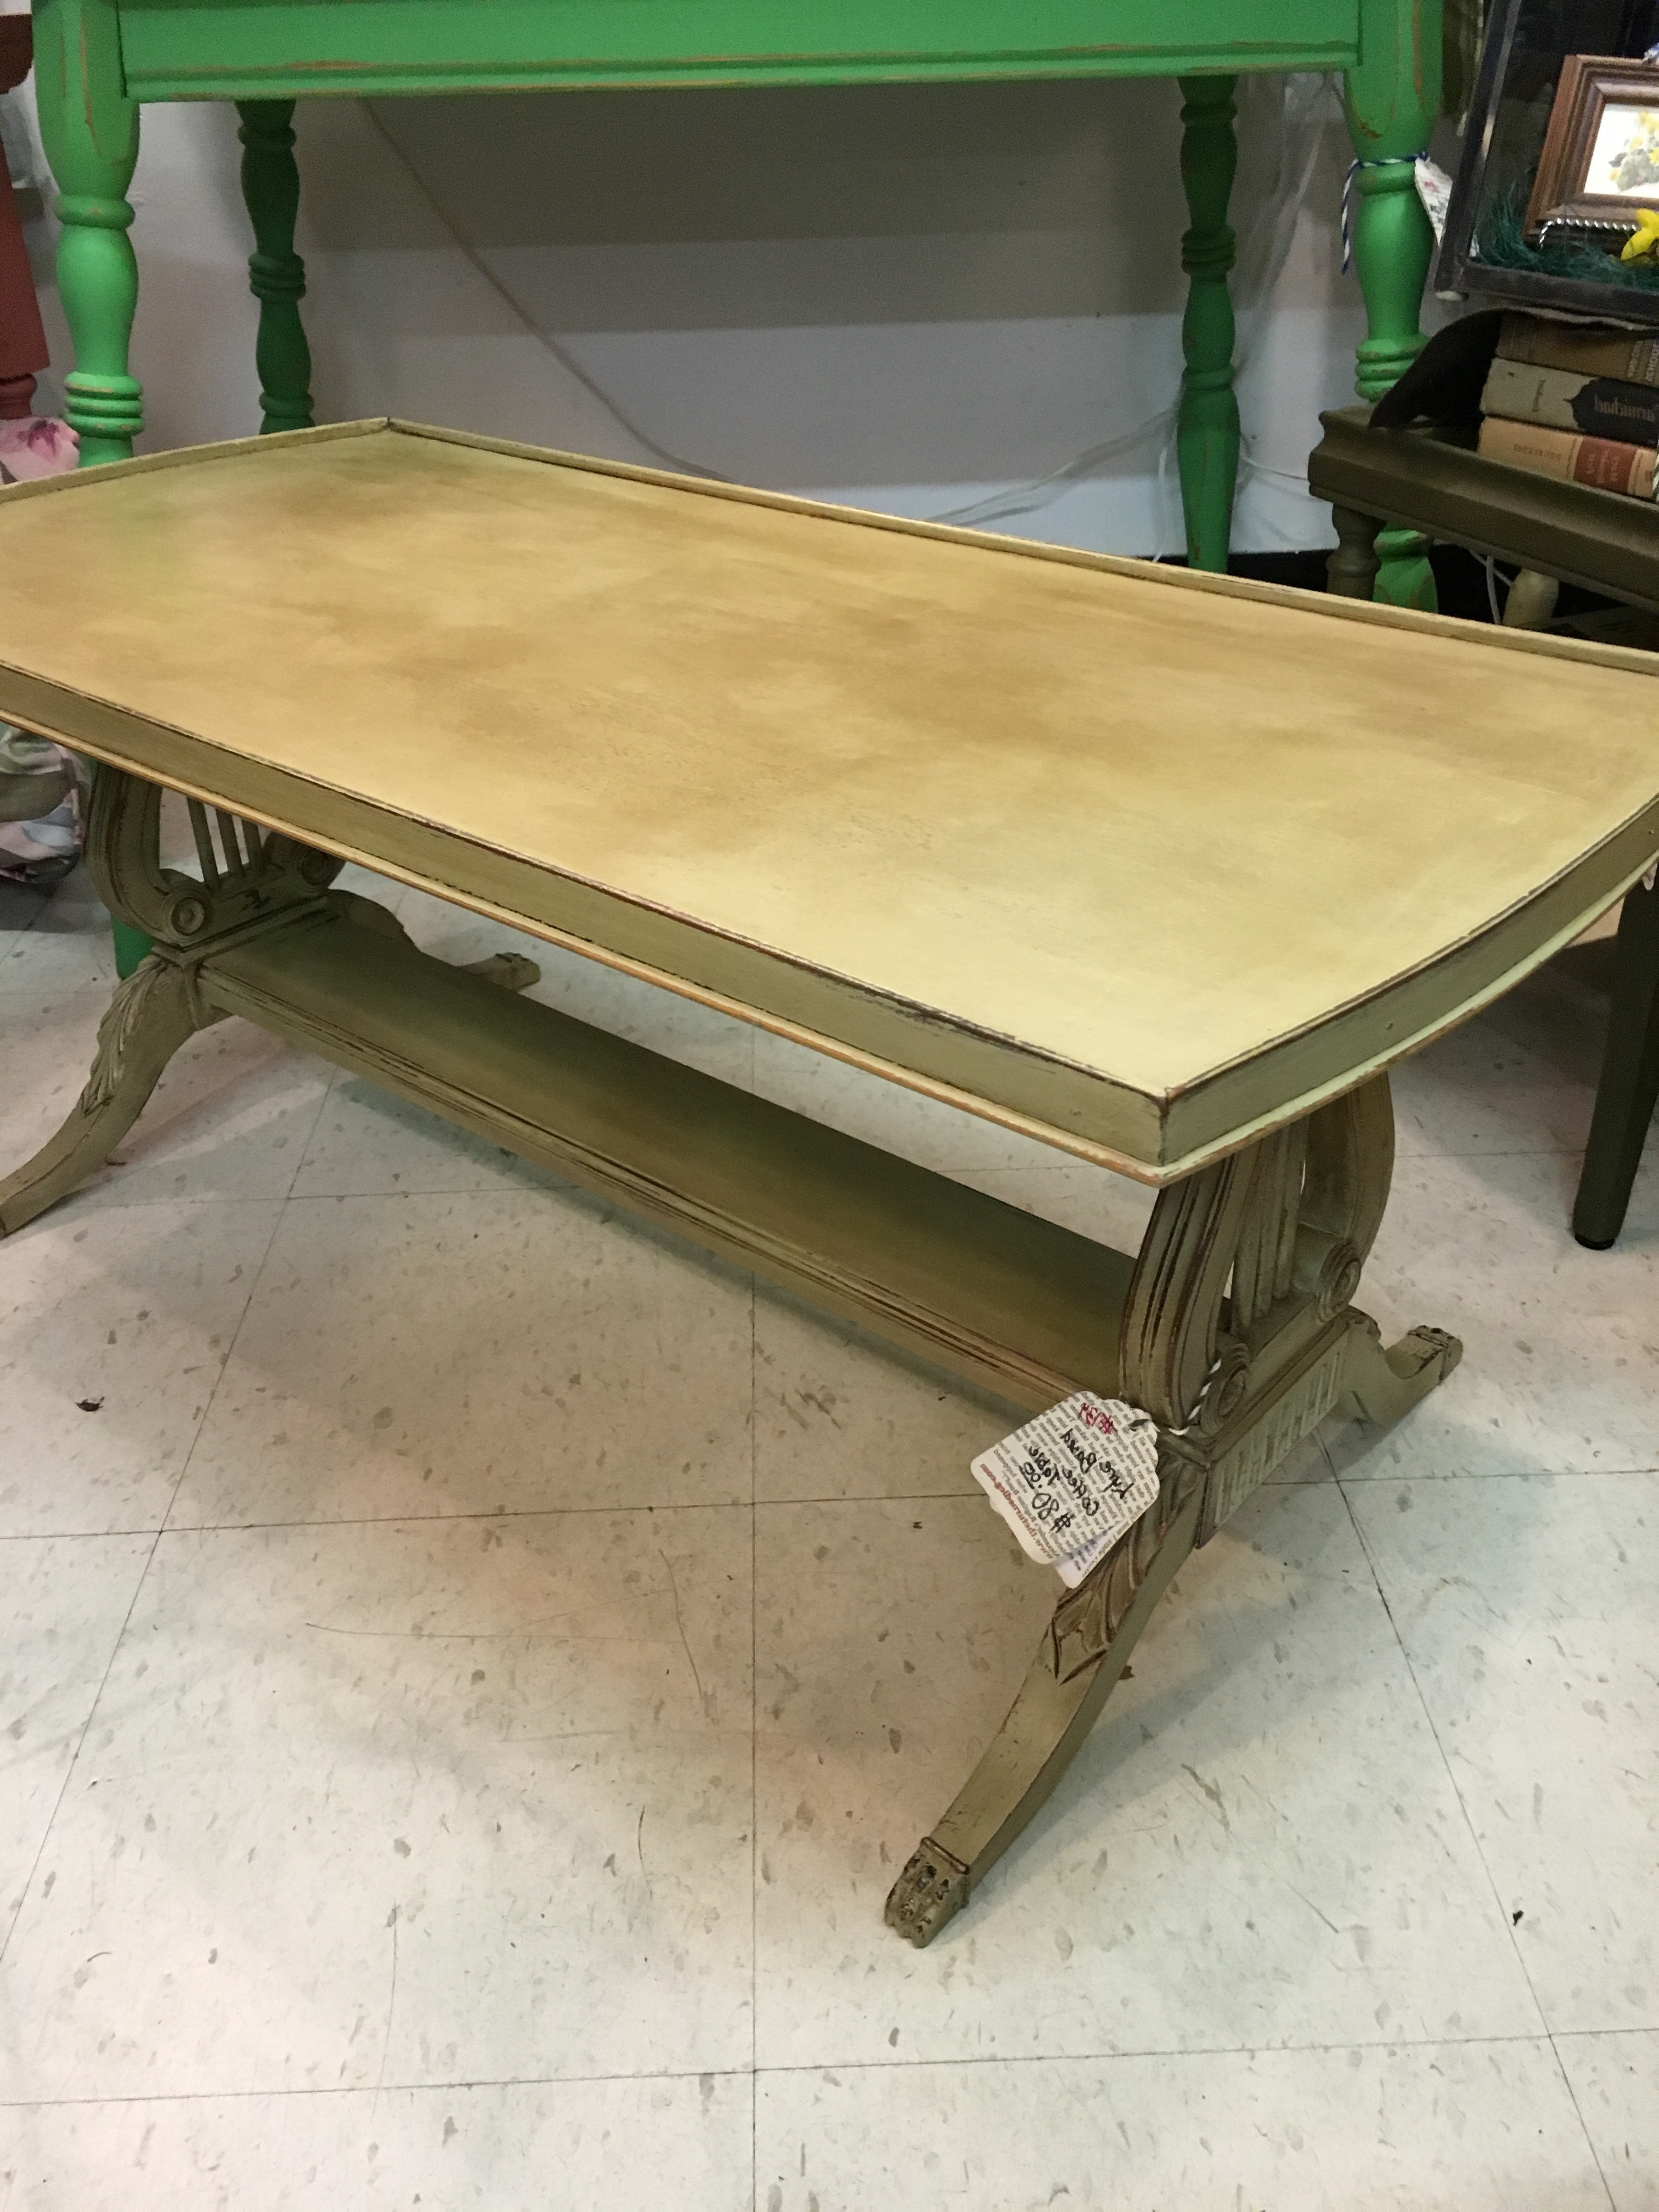 Lyre Based Coffee Table $80 Sold – The Turned Leg For Latest Lyre Coffee Tables (View 19 of 20)